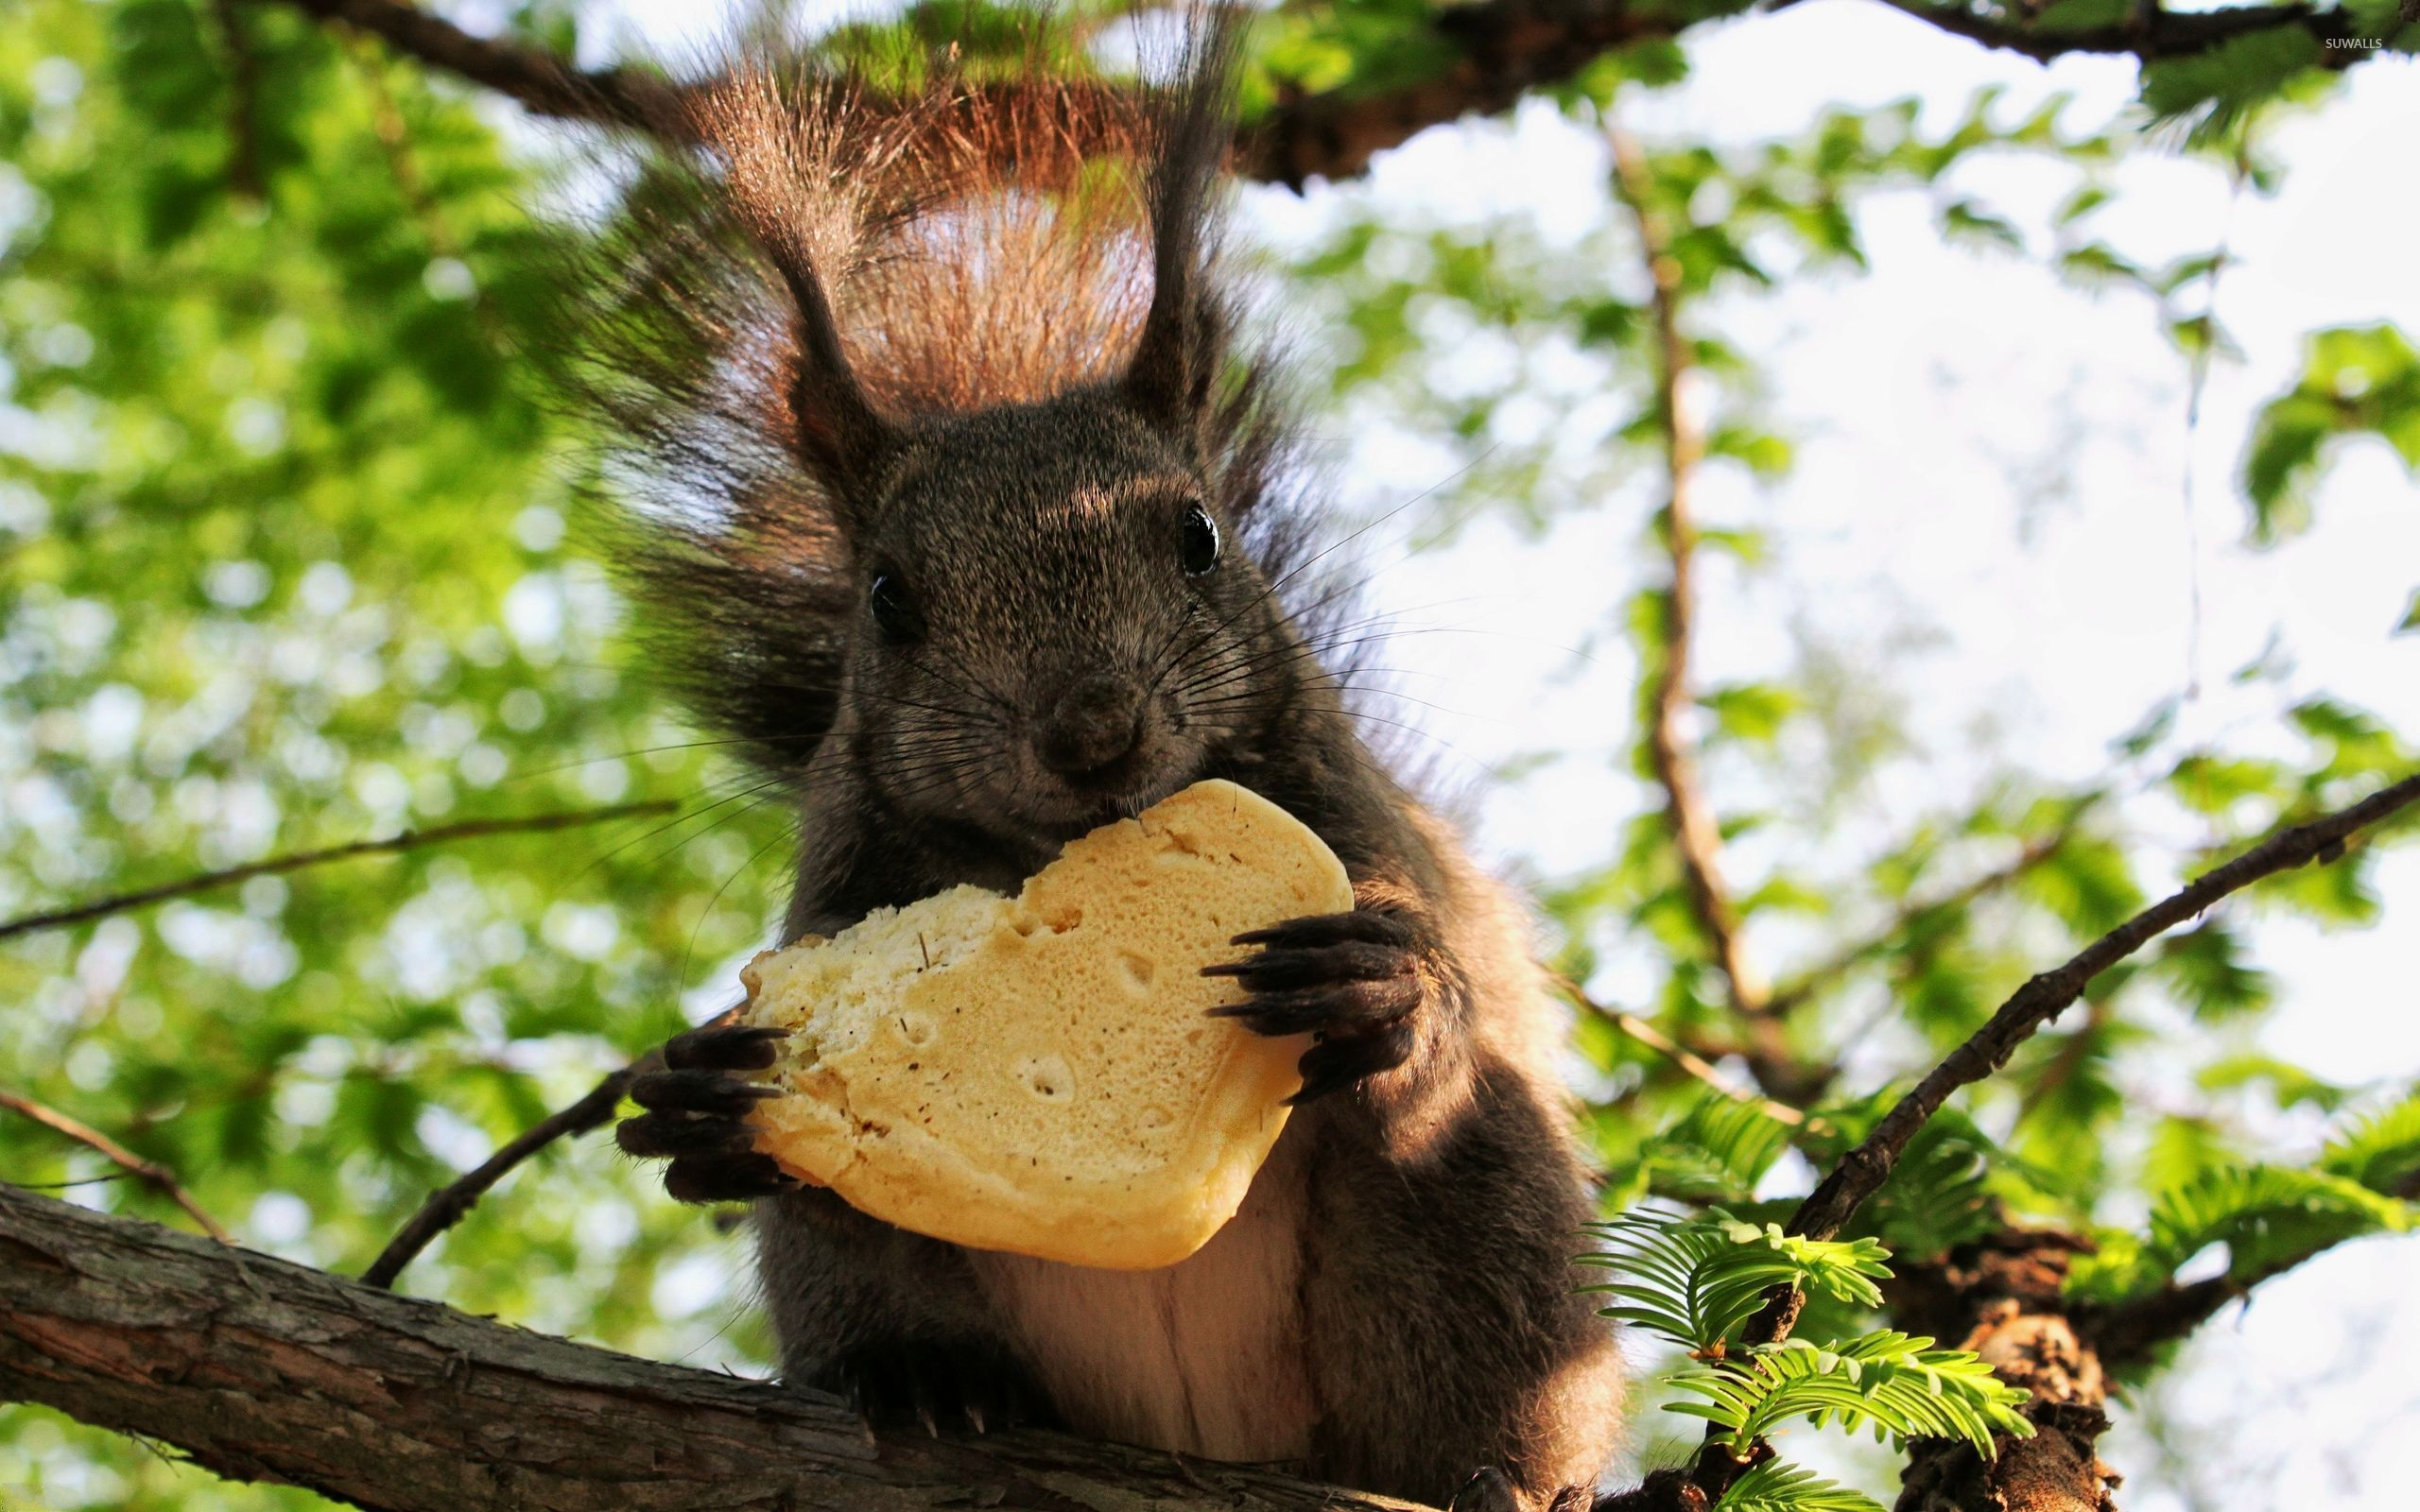 Cute Dog Baby Hd Wallpaper Squirrel Eating Bread On The Tree Wallpaper Animal